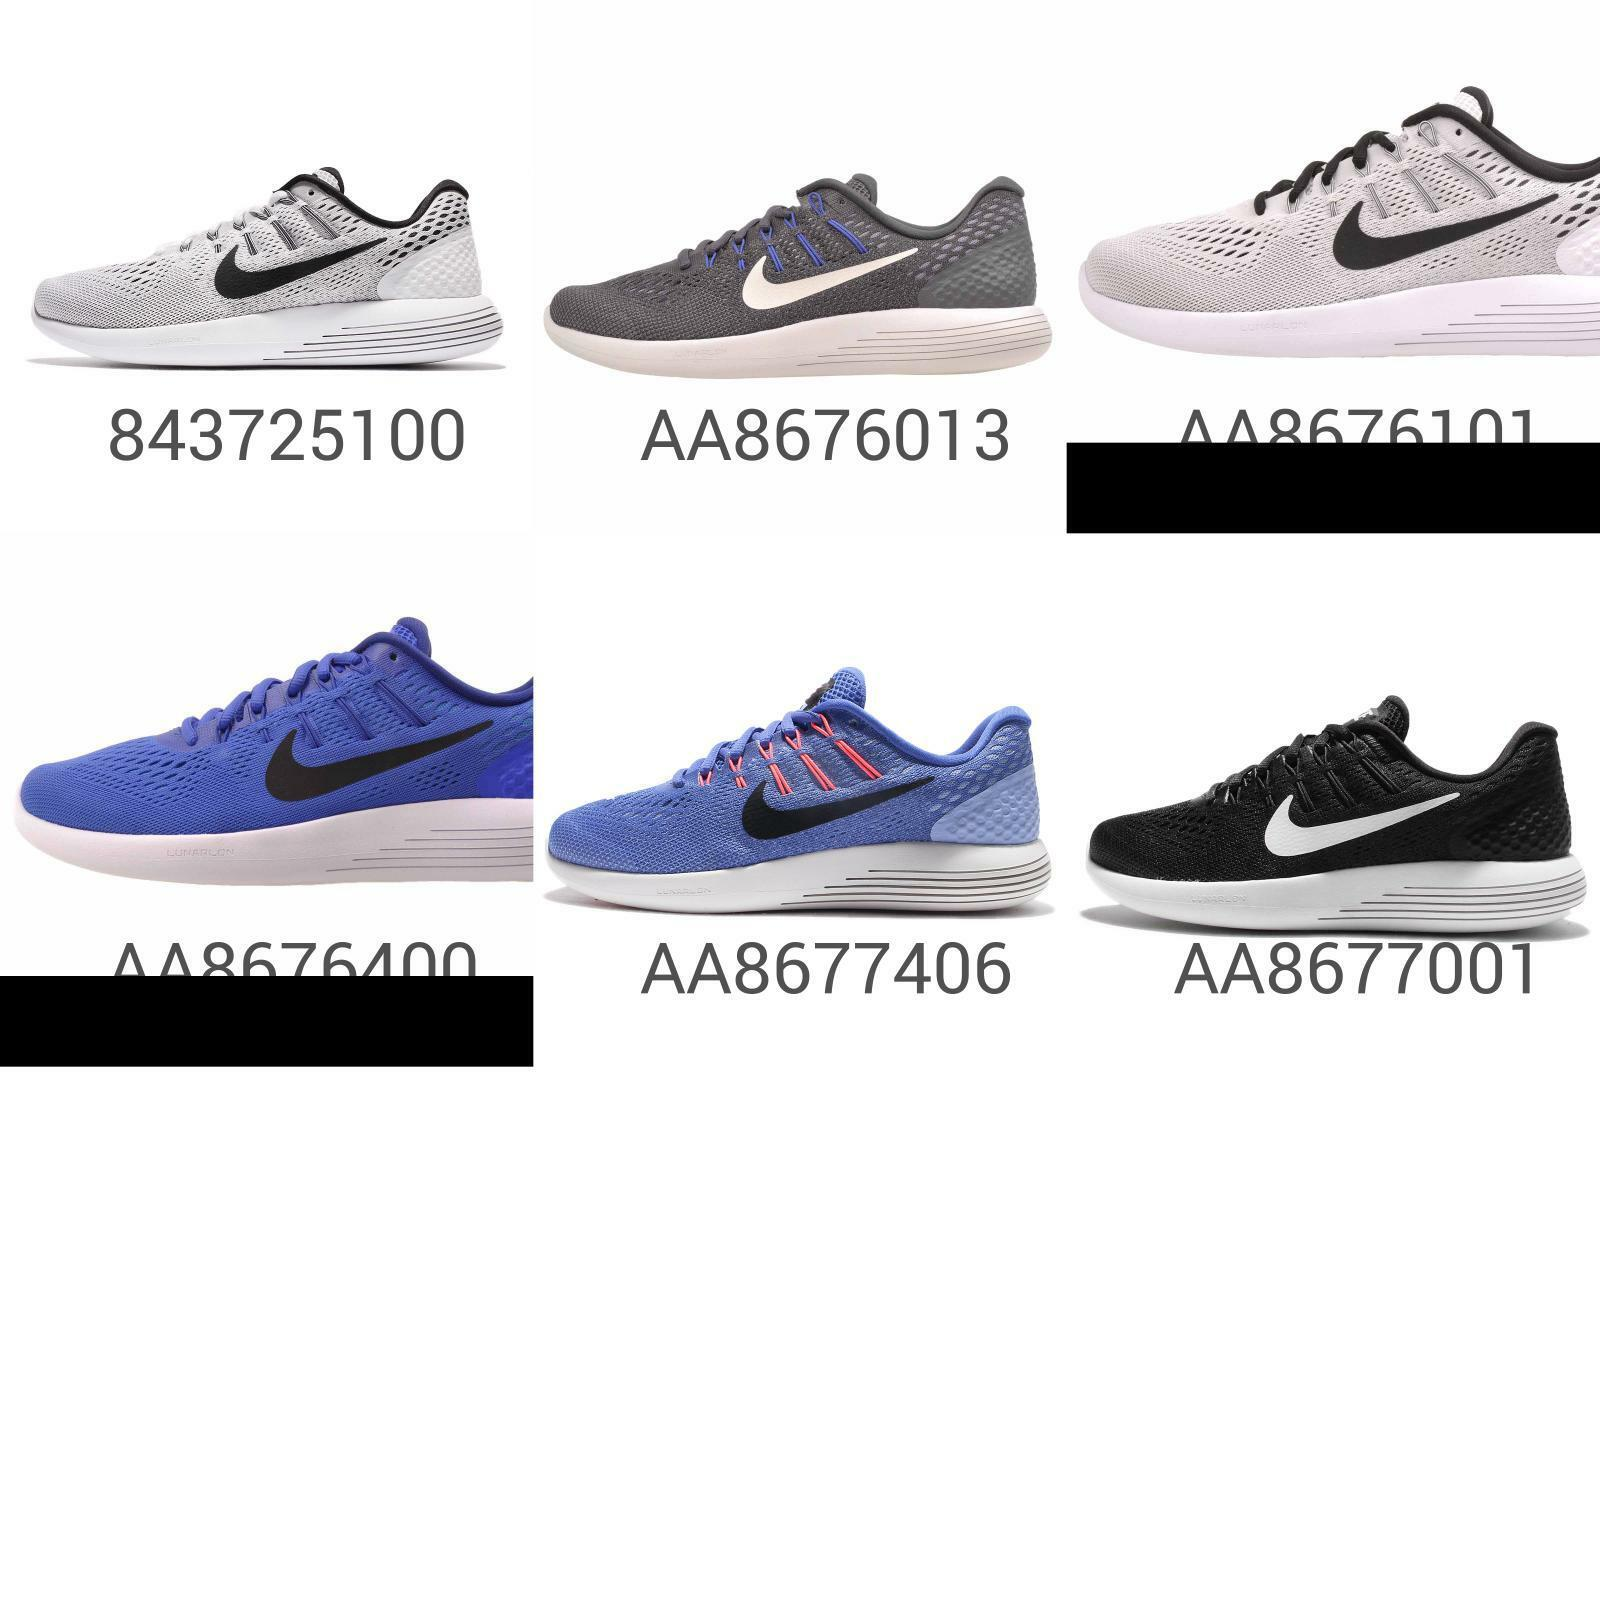 Nike Lunarglide 8 Men   Women Running shoes NWOB Pick 1